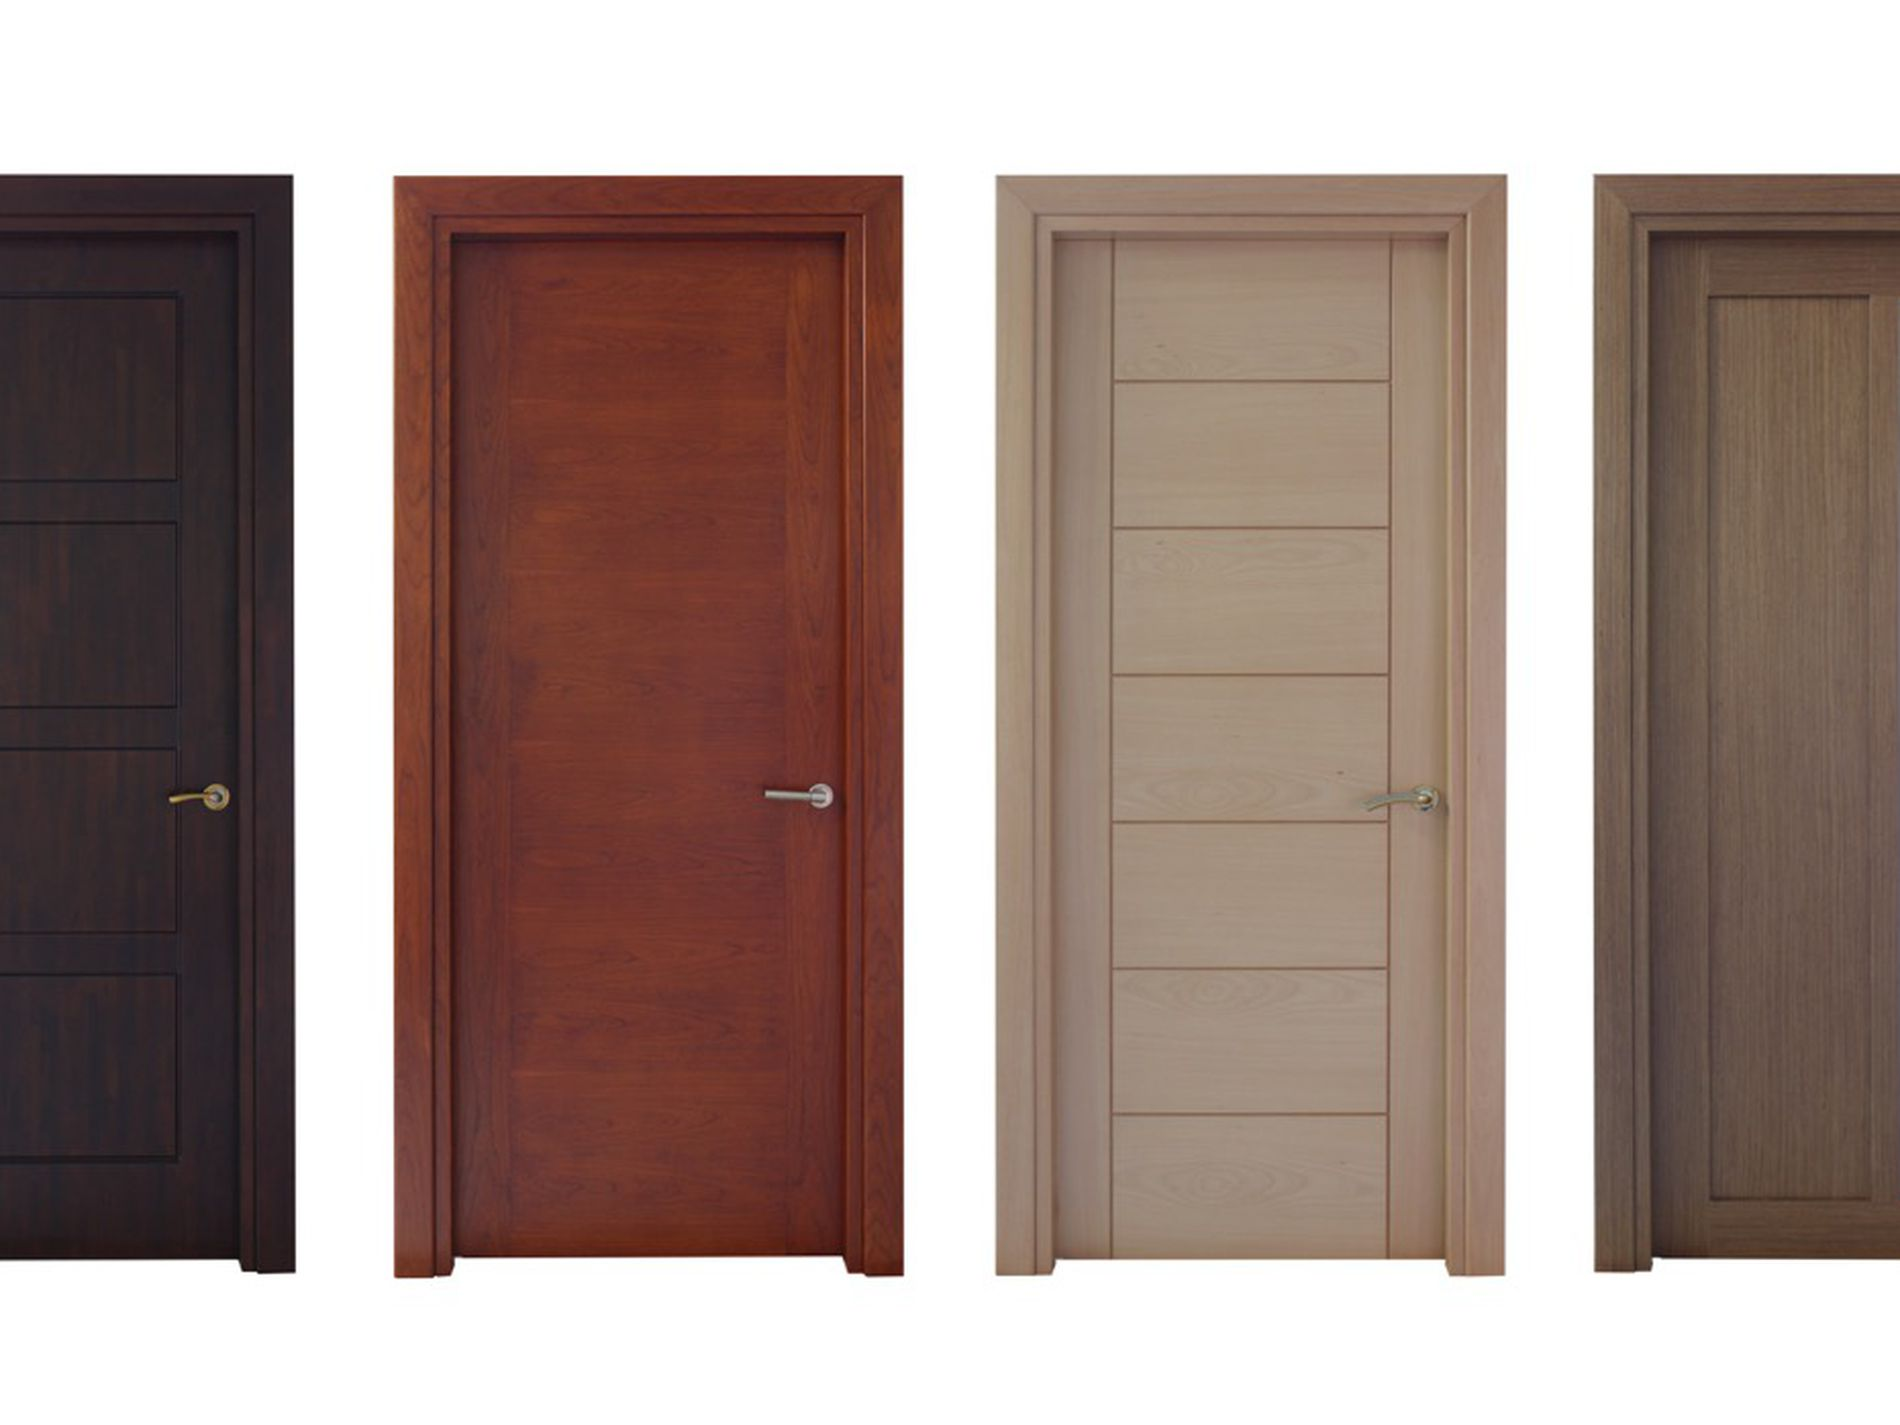 Retail and Wholesale Door Business for Sale